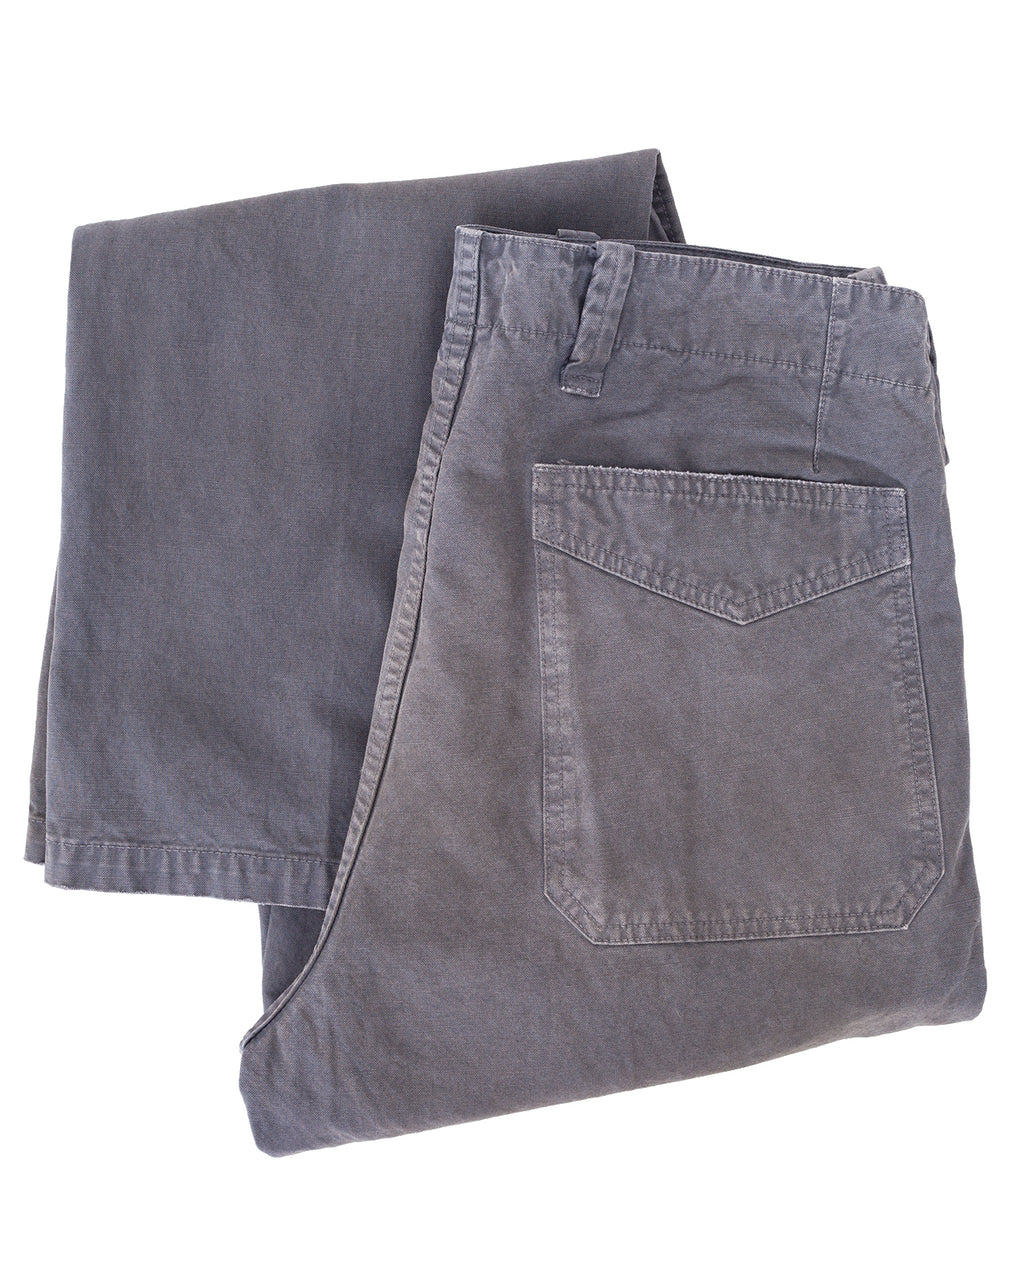 Visvim Gifford Pants Damaged, Grey